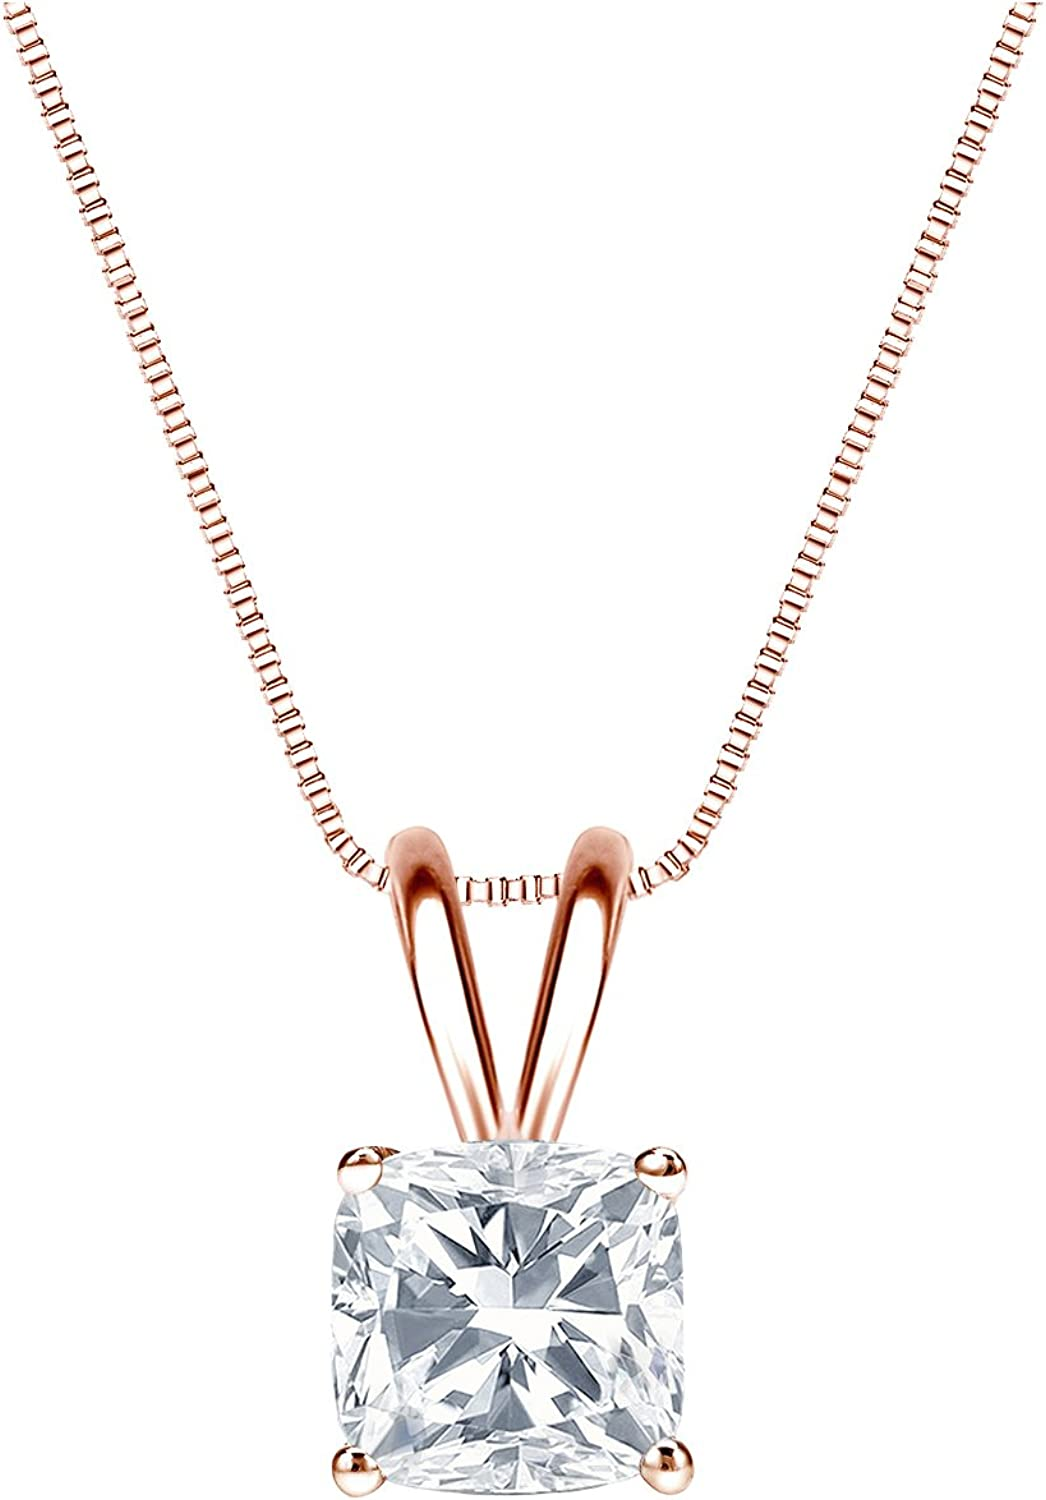 14k Rose Gold 4-Prong Basket Solitaire Diamond Cushion-Cut Penda Sale SALE% 67% OFF of fixed price OFF